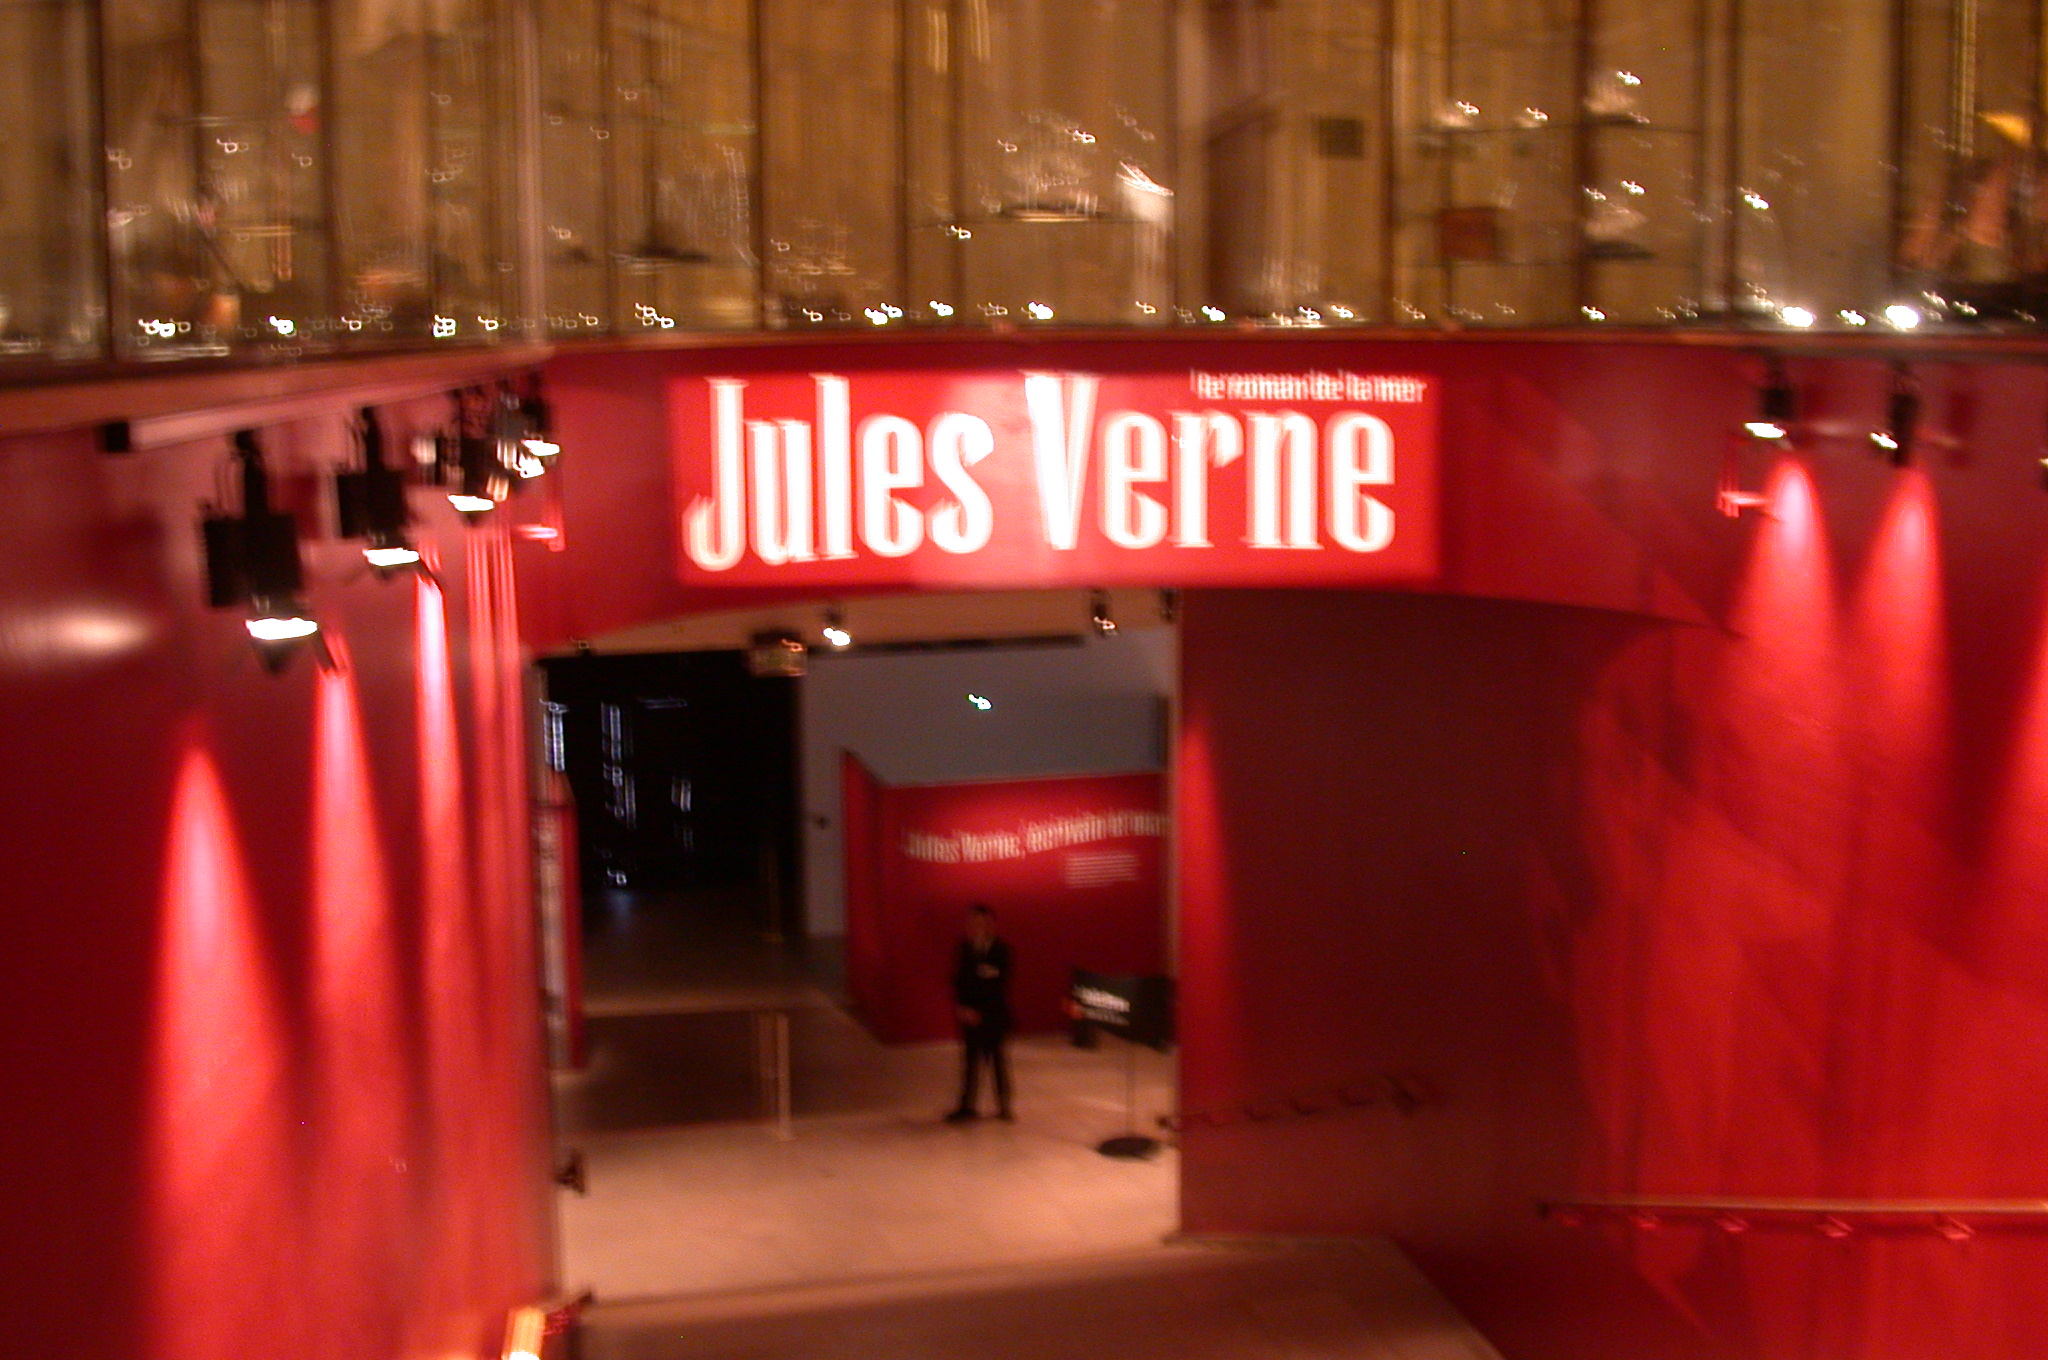 DSCN0212.jpg - The Musée national de la Marine de Paris had a special Verne exhibit.